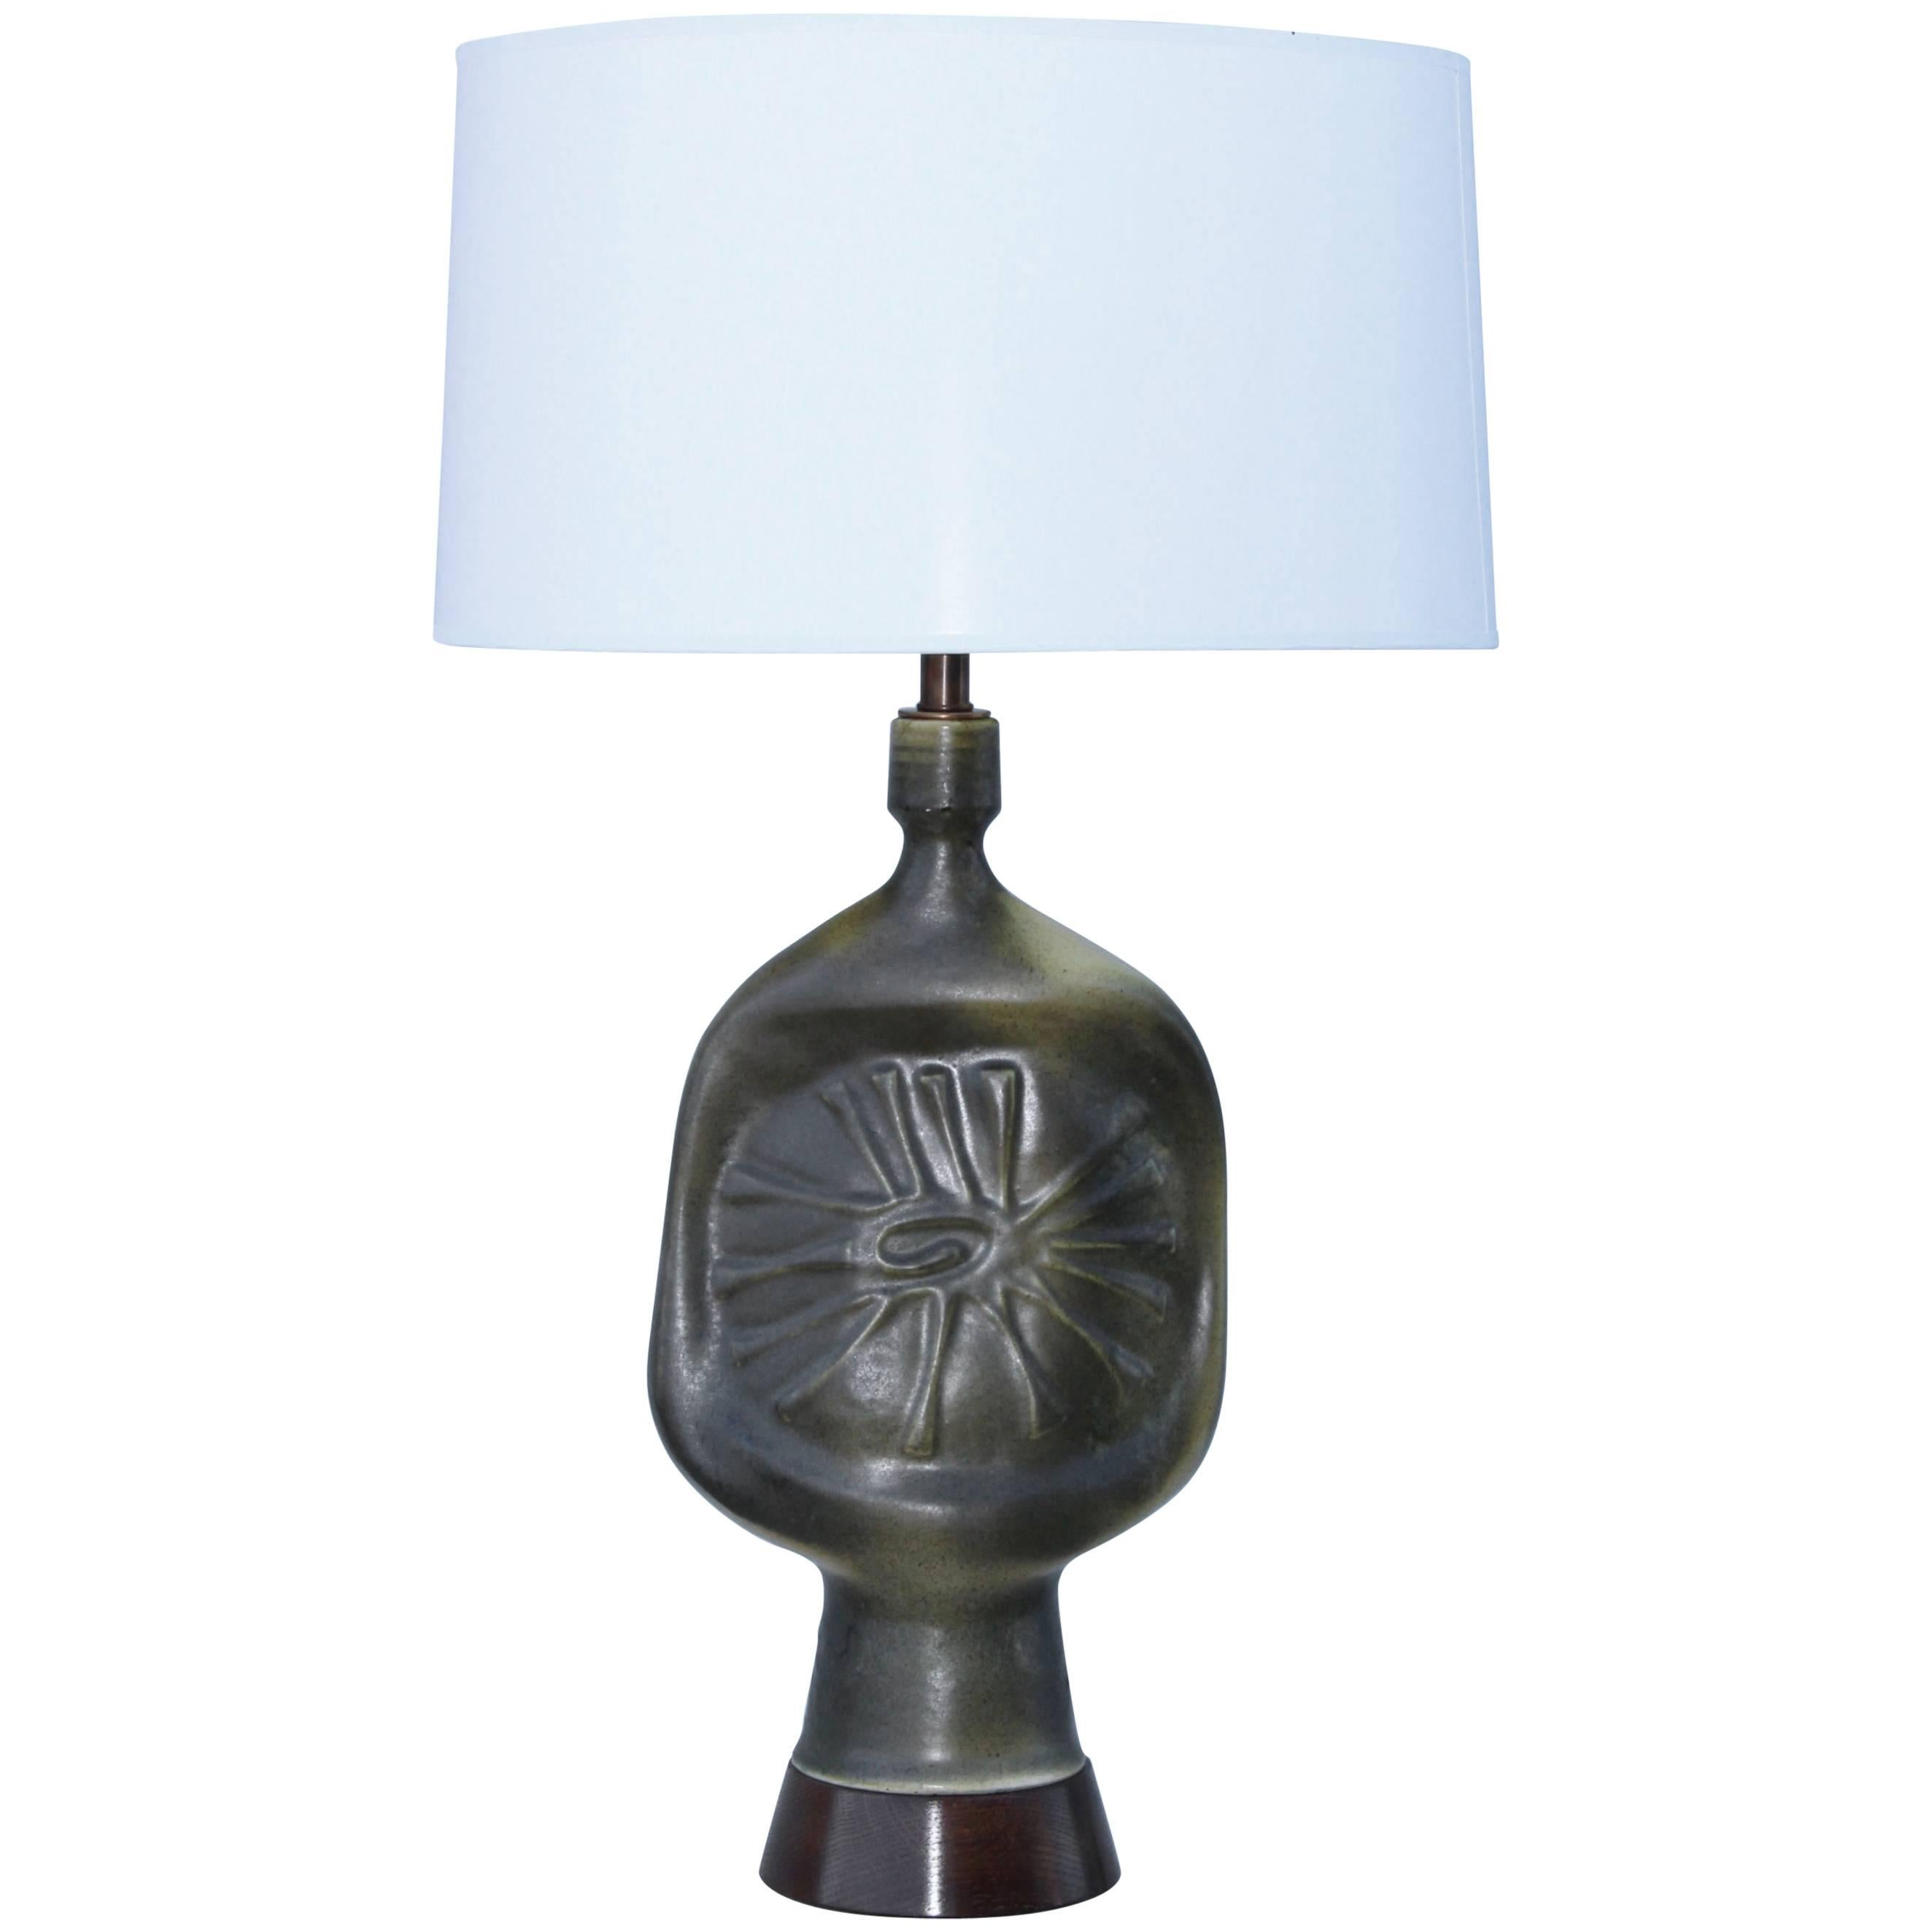 1960s French Modernist Pottery Table Lamp